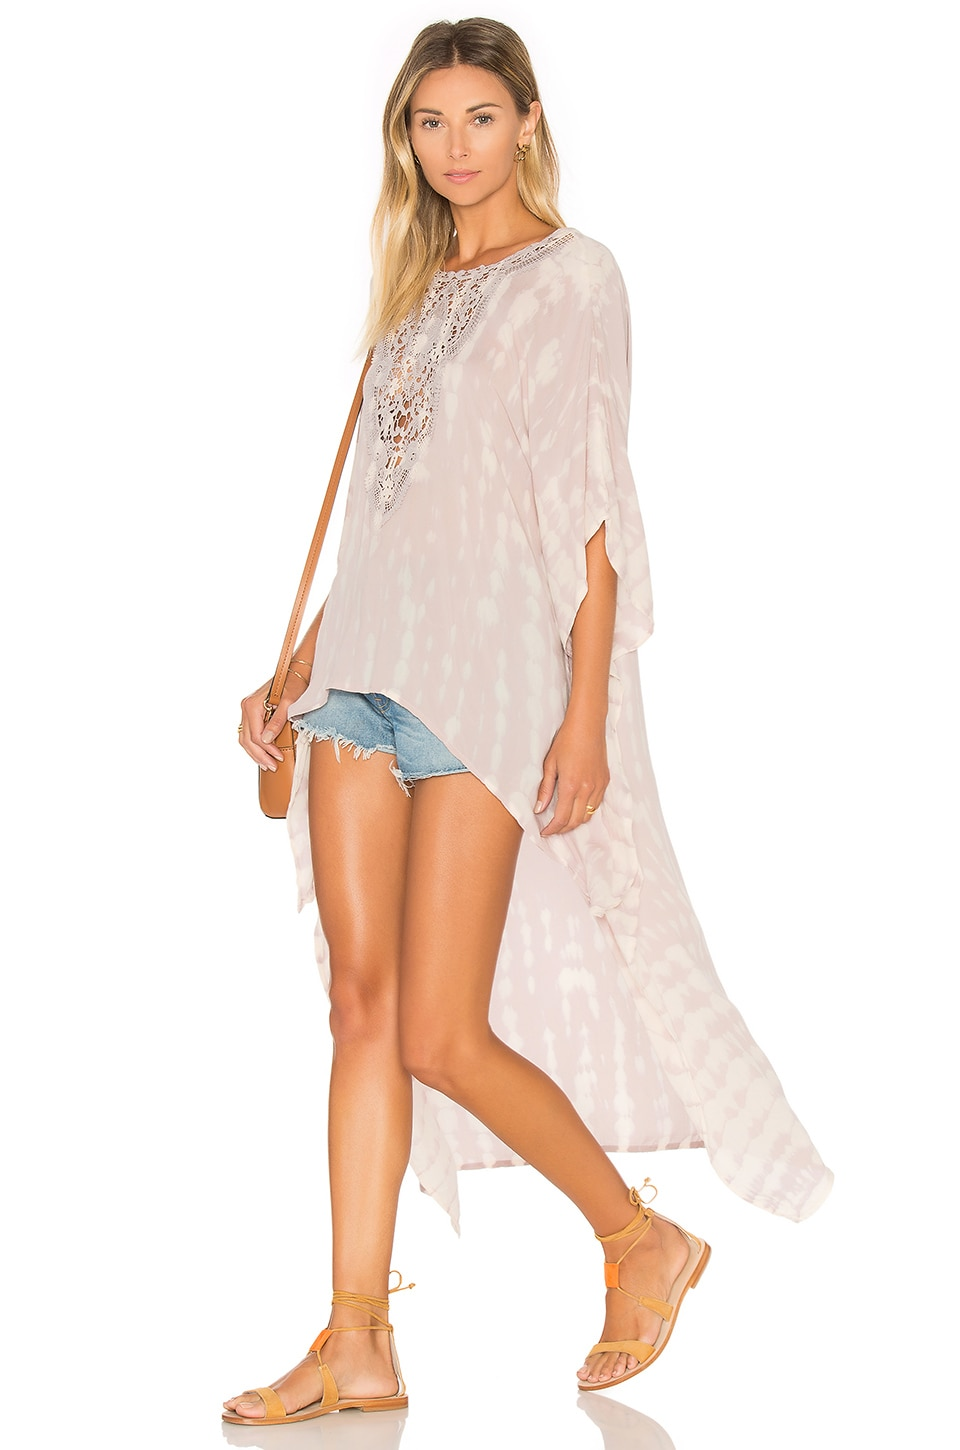 Tiare Hawaii Madagascar Tunic in Skin Tie Dye